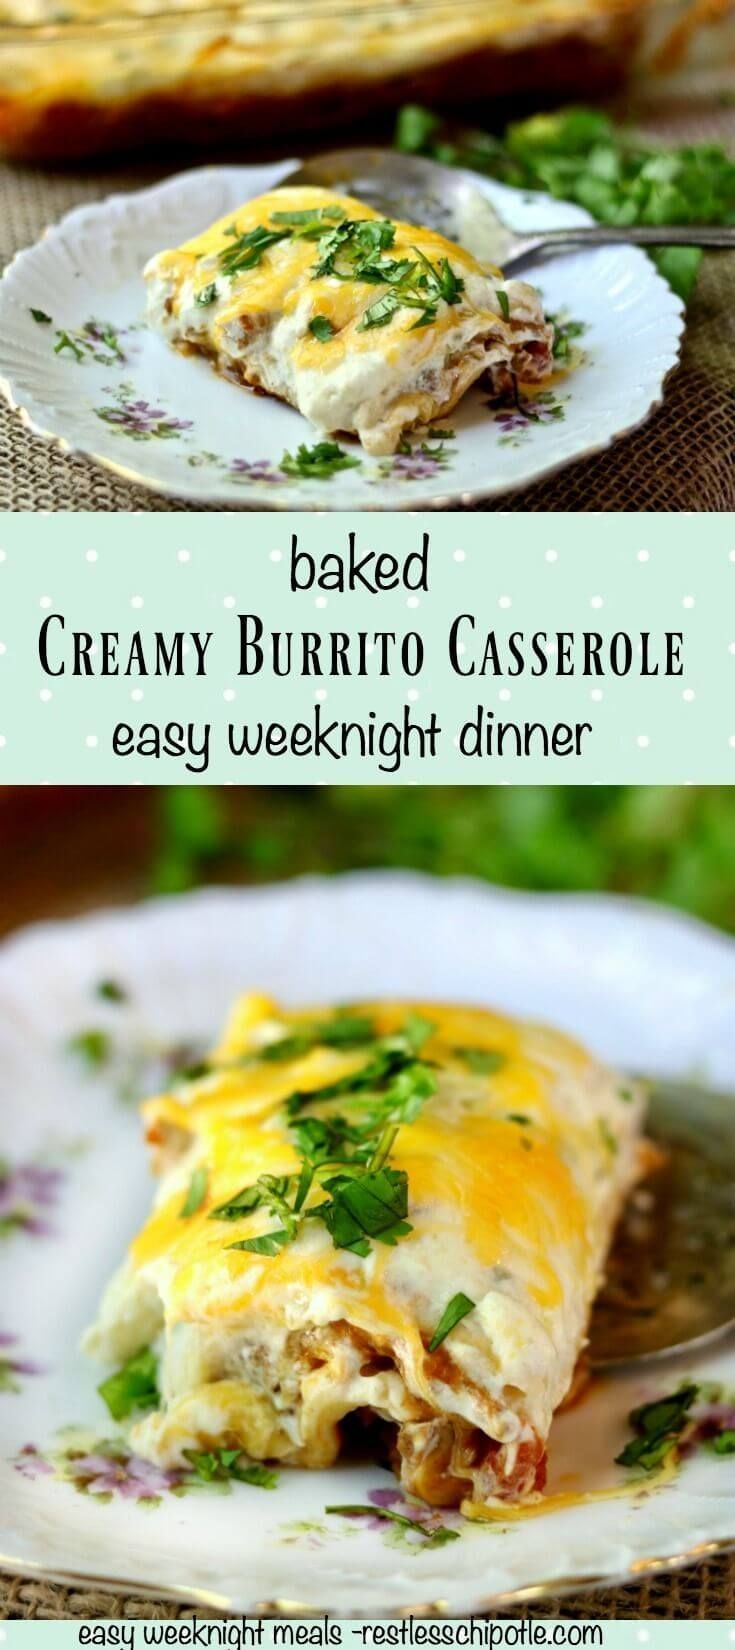 Creamy burrito casserole recipe is so good! Perfect when you want Tex-Mex! You can even assemble it up to two days ahead and bake when needed! From RestlessChipotle.com via @Marye at Restless Chipotle